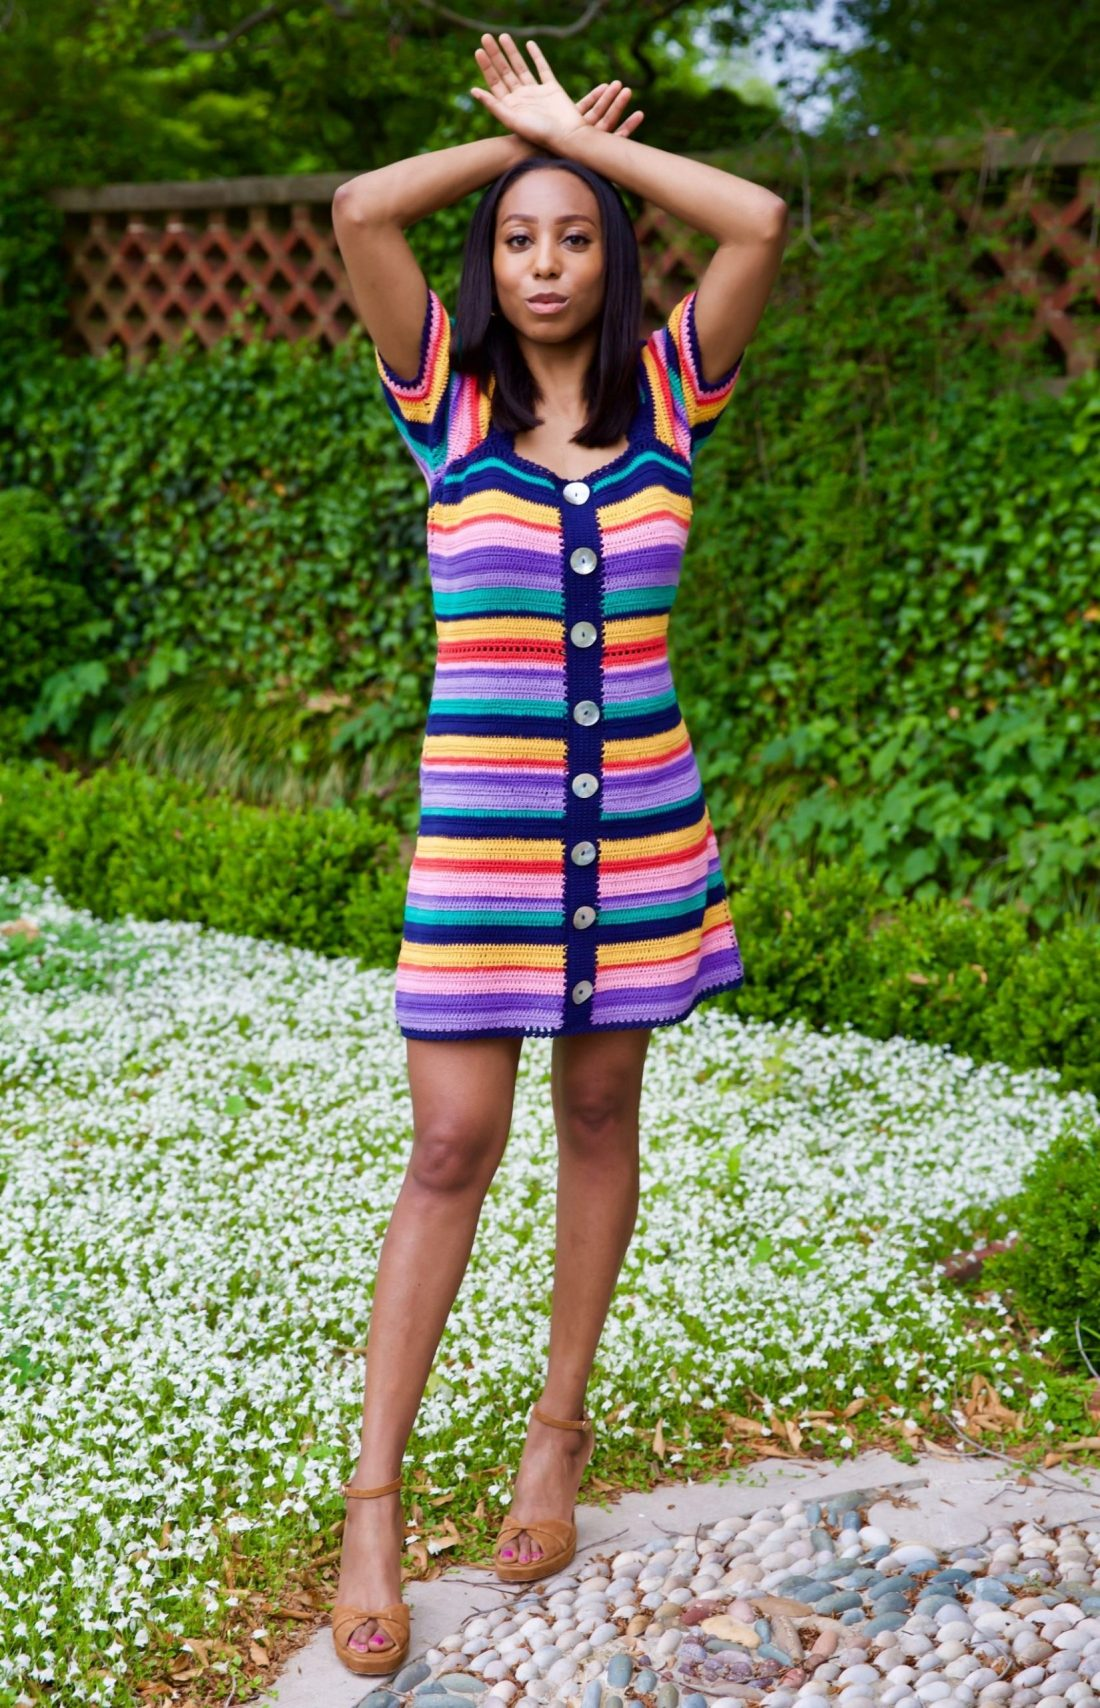 Jilene Jackson stands posing with arms above and rested on her head wearing Farm Rio Rainbow Crochet Mini Dress